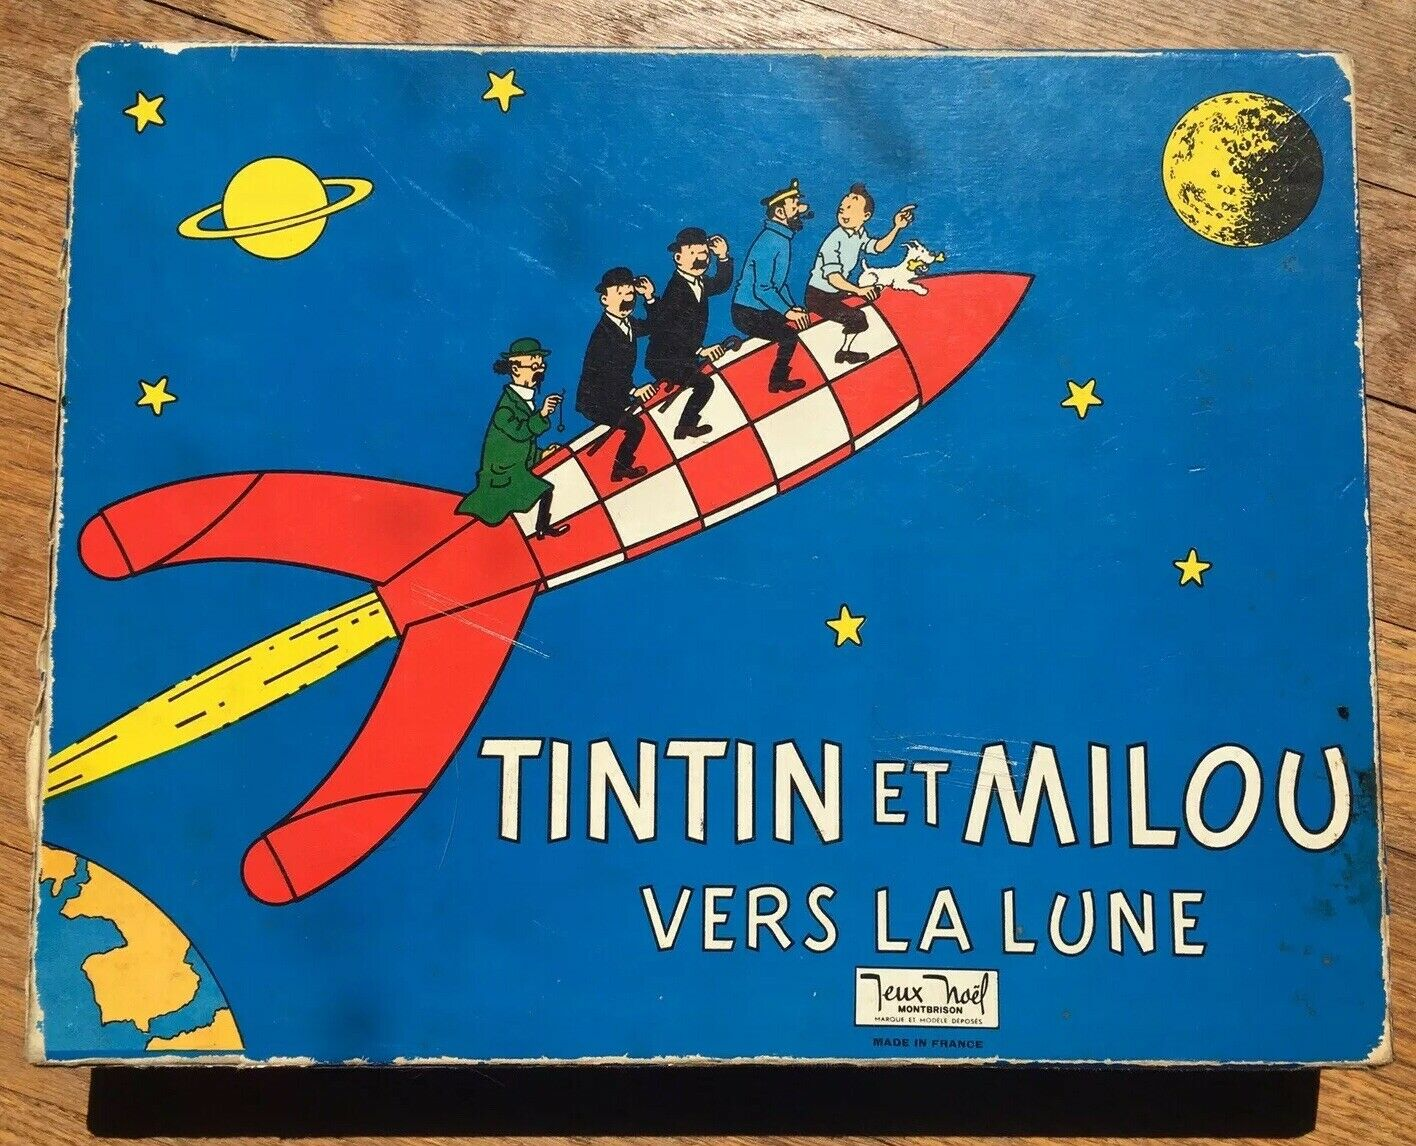 TINTIN ET MILOU Vintage French BOARD GAME Vers la Lune 1969 Jeux Noel COMPLETE